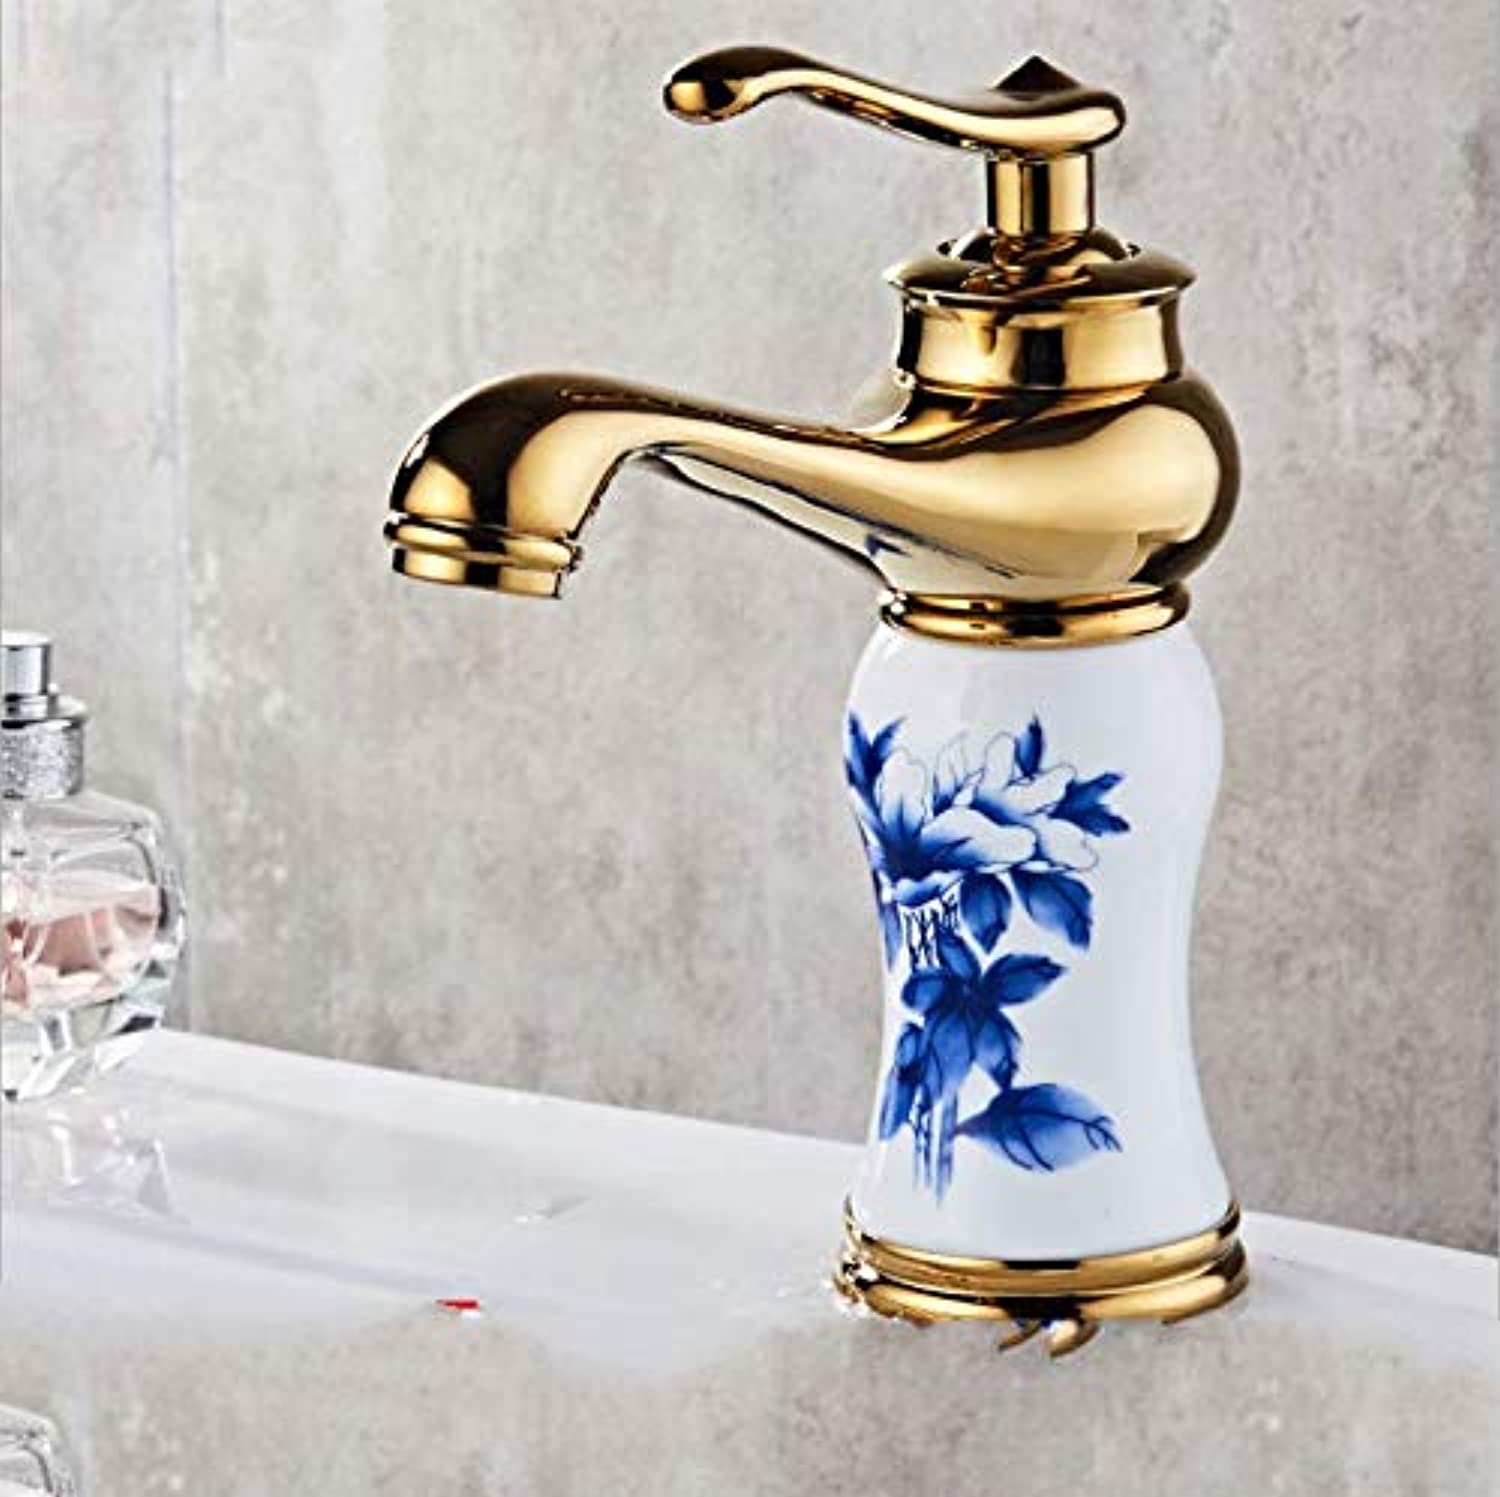 Jukunlun New Porcelain and Brass Faucet Chrome Finished Bathroom Basin Faucet Luxury Sink Tap Basin Mixer High Quality Water Tap